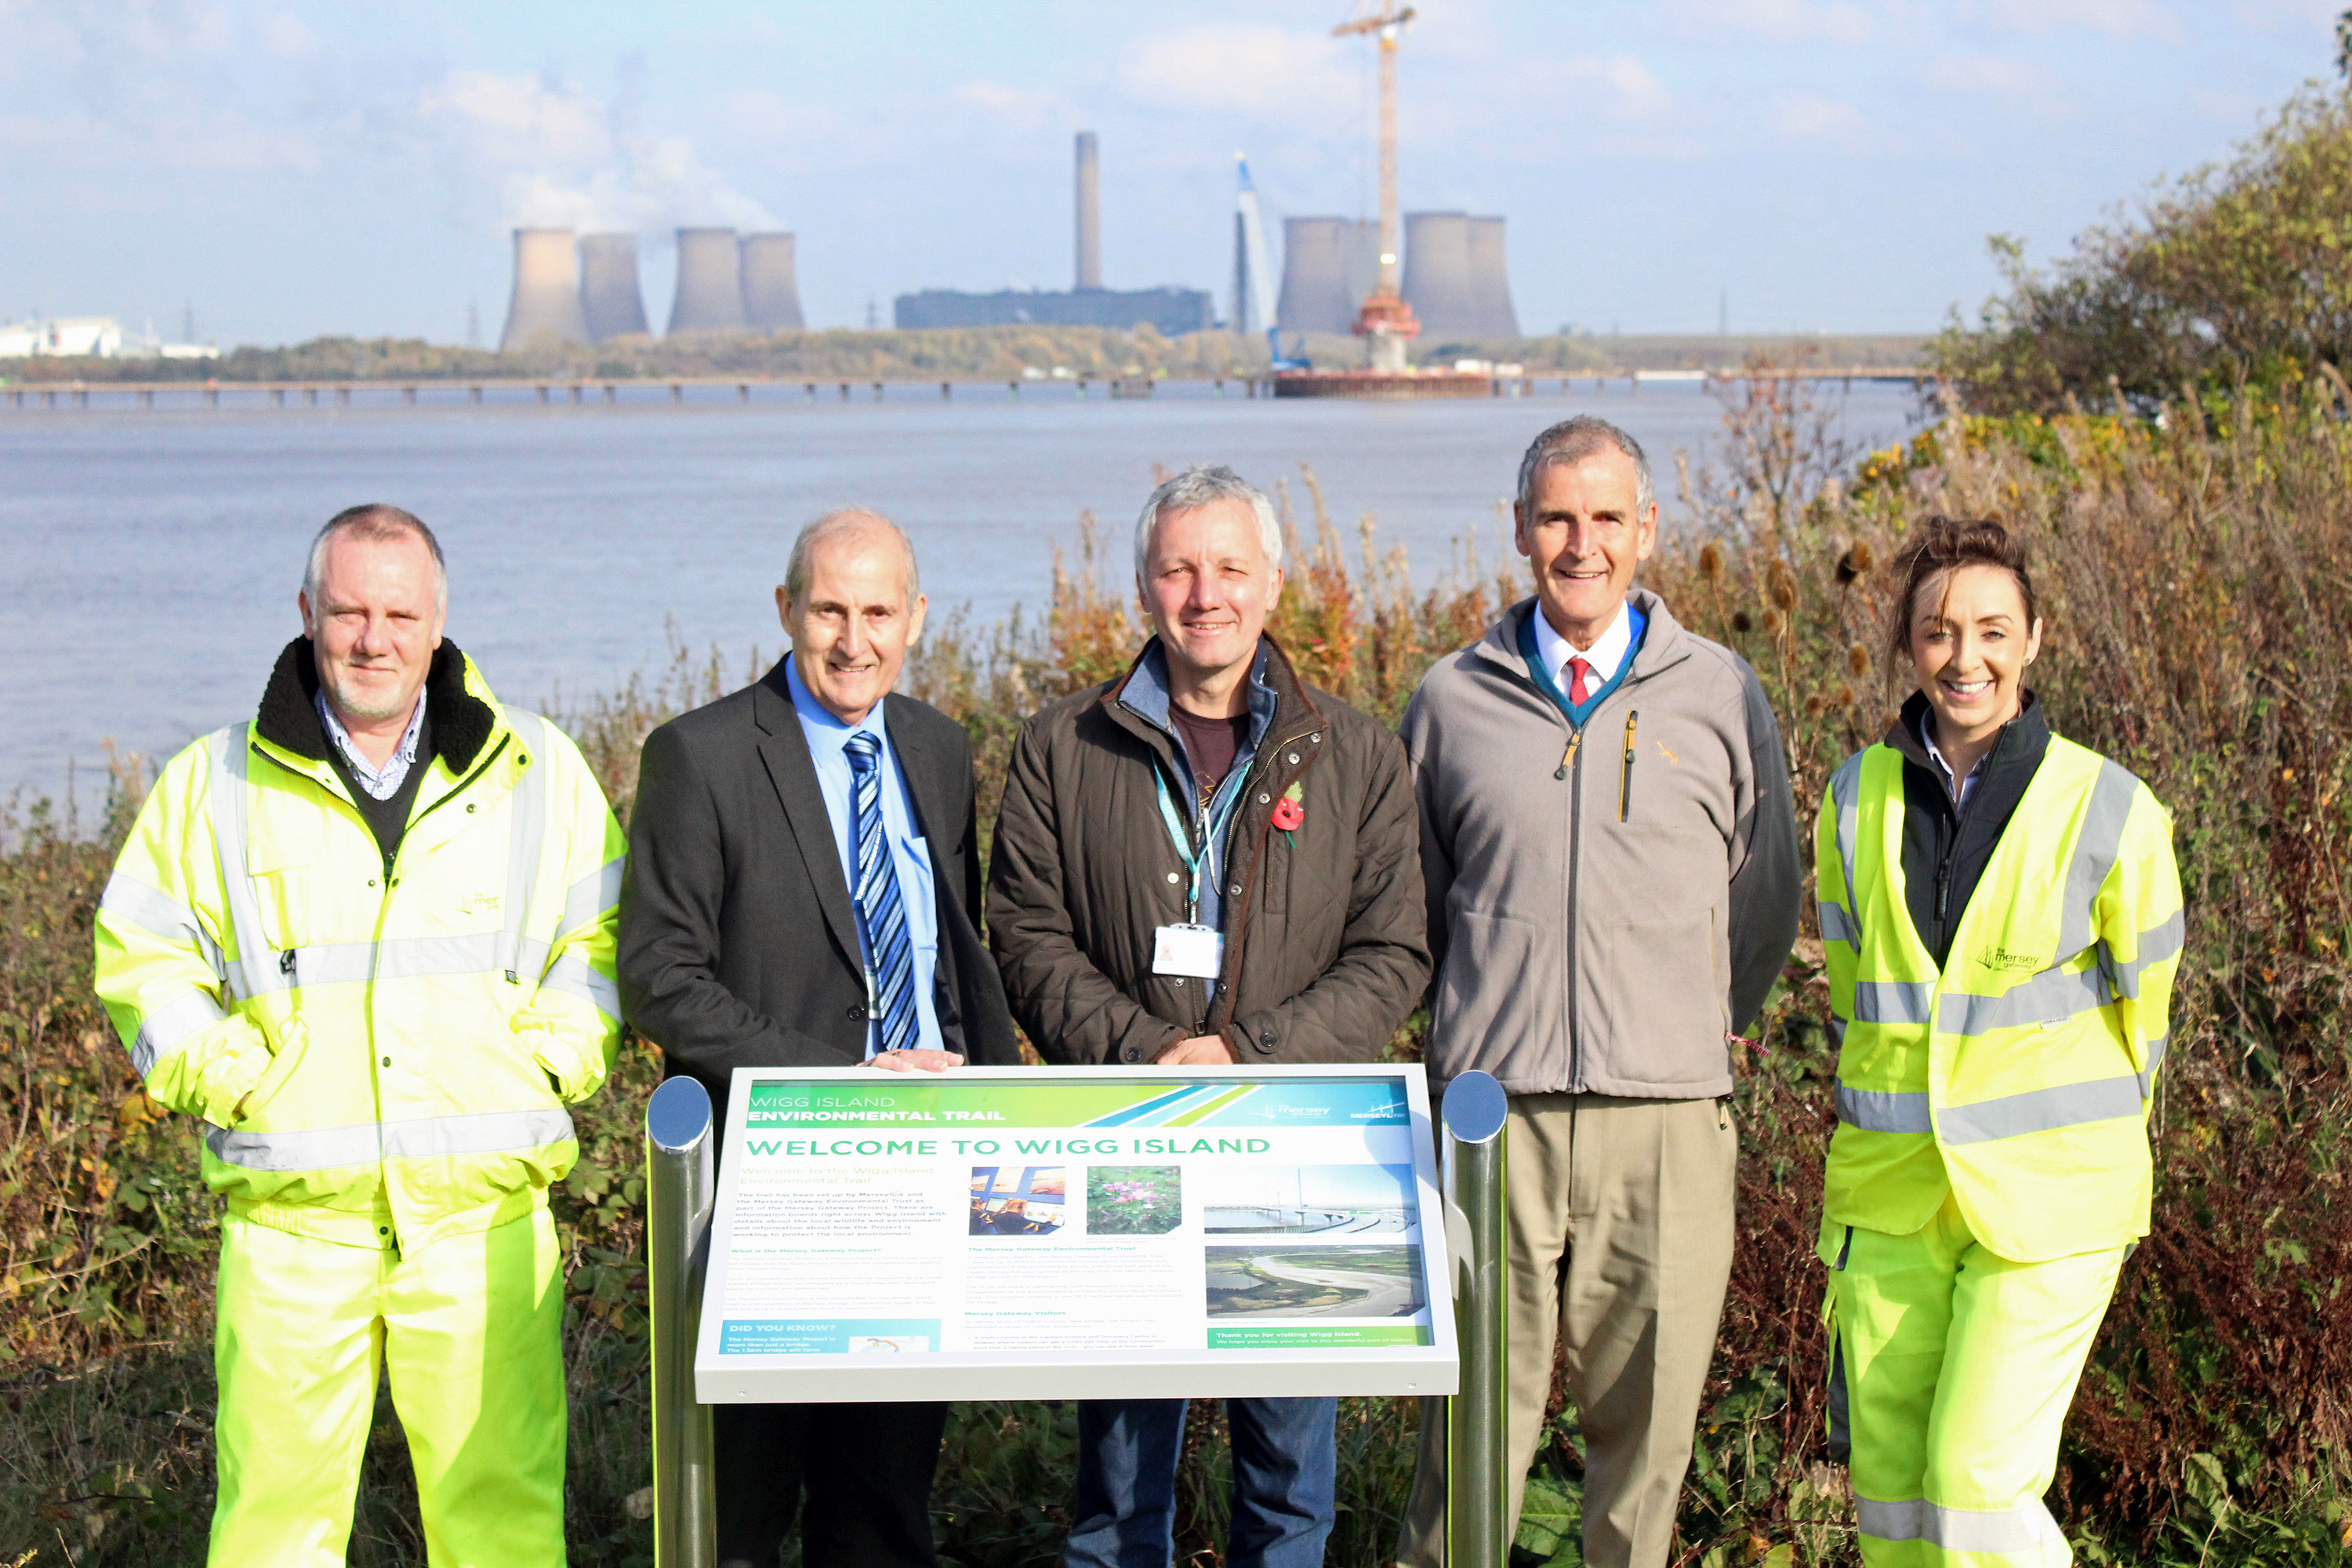 The team at the start of the Wigg Island Environmental Trail